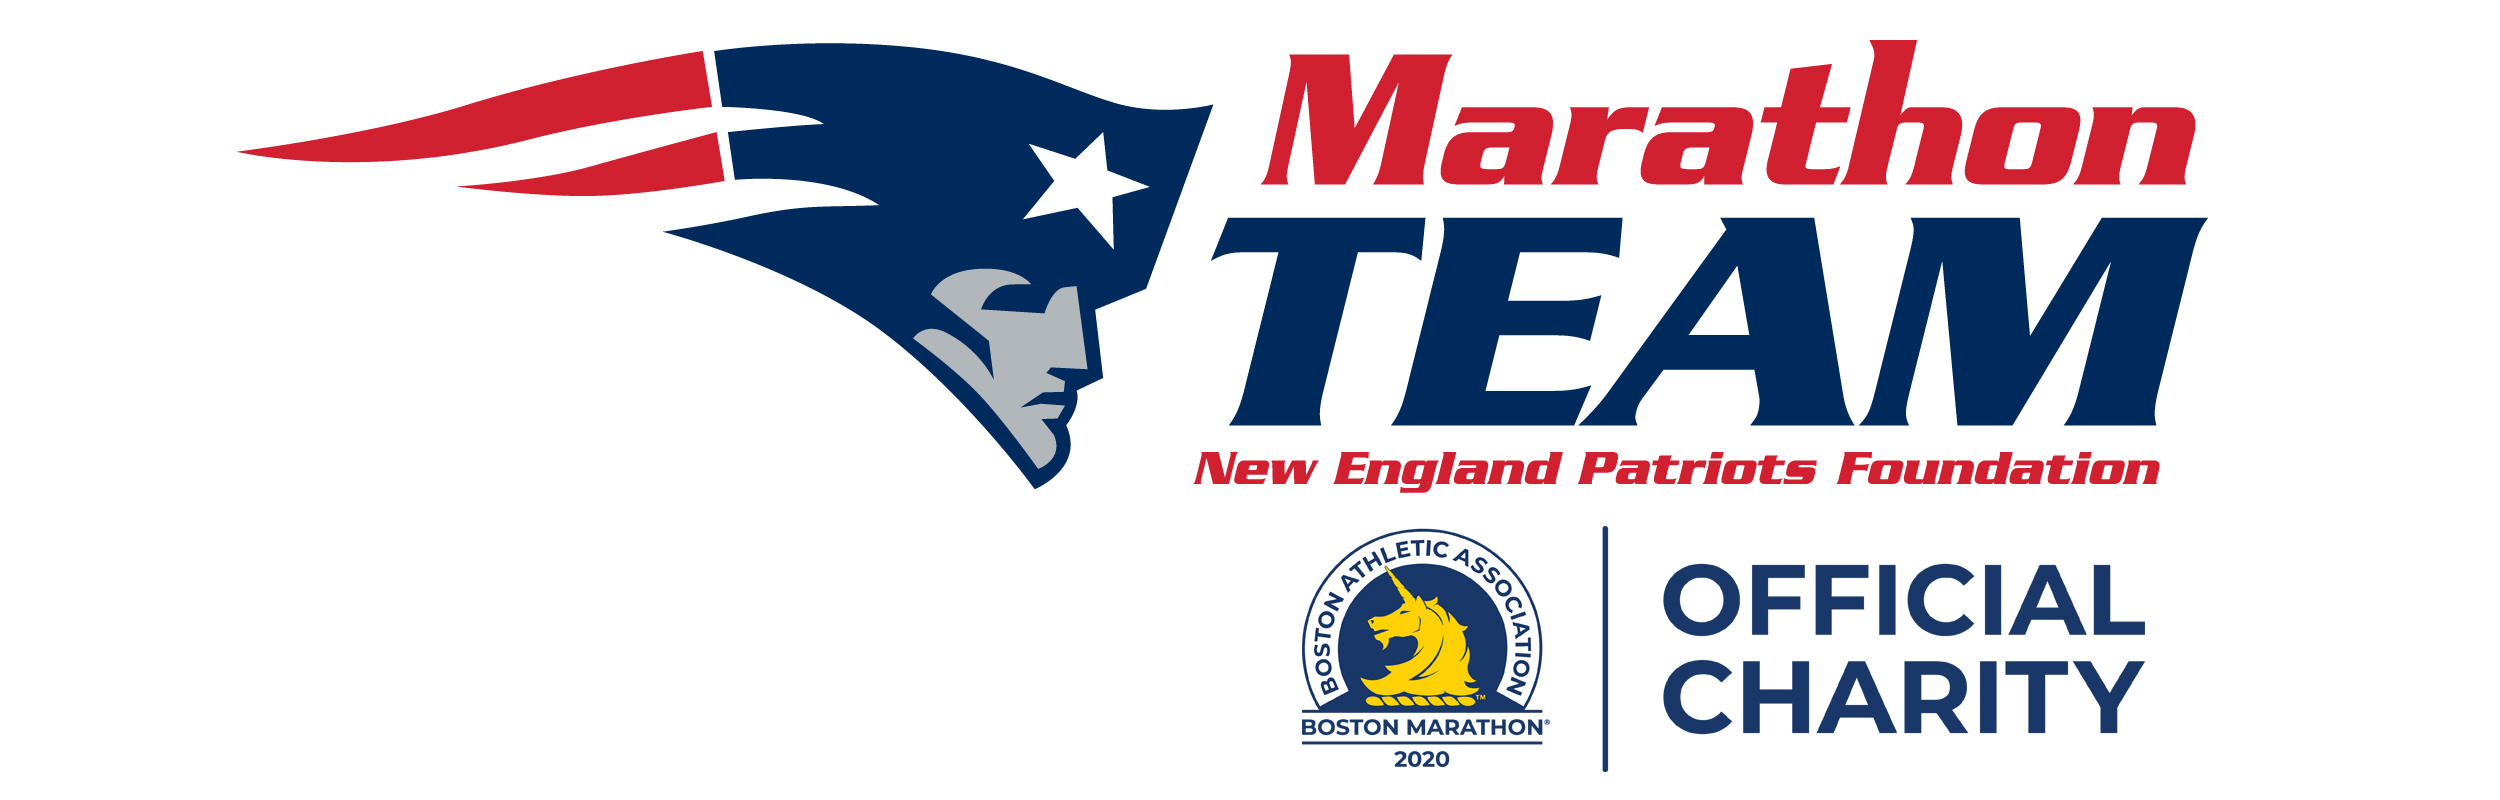 New England Patriots Schedule 2020.Official Website Of The New England Patriots